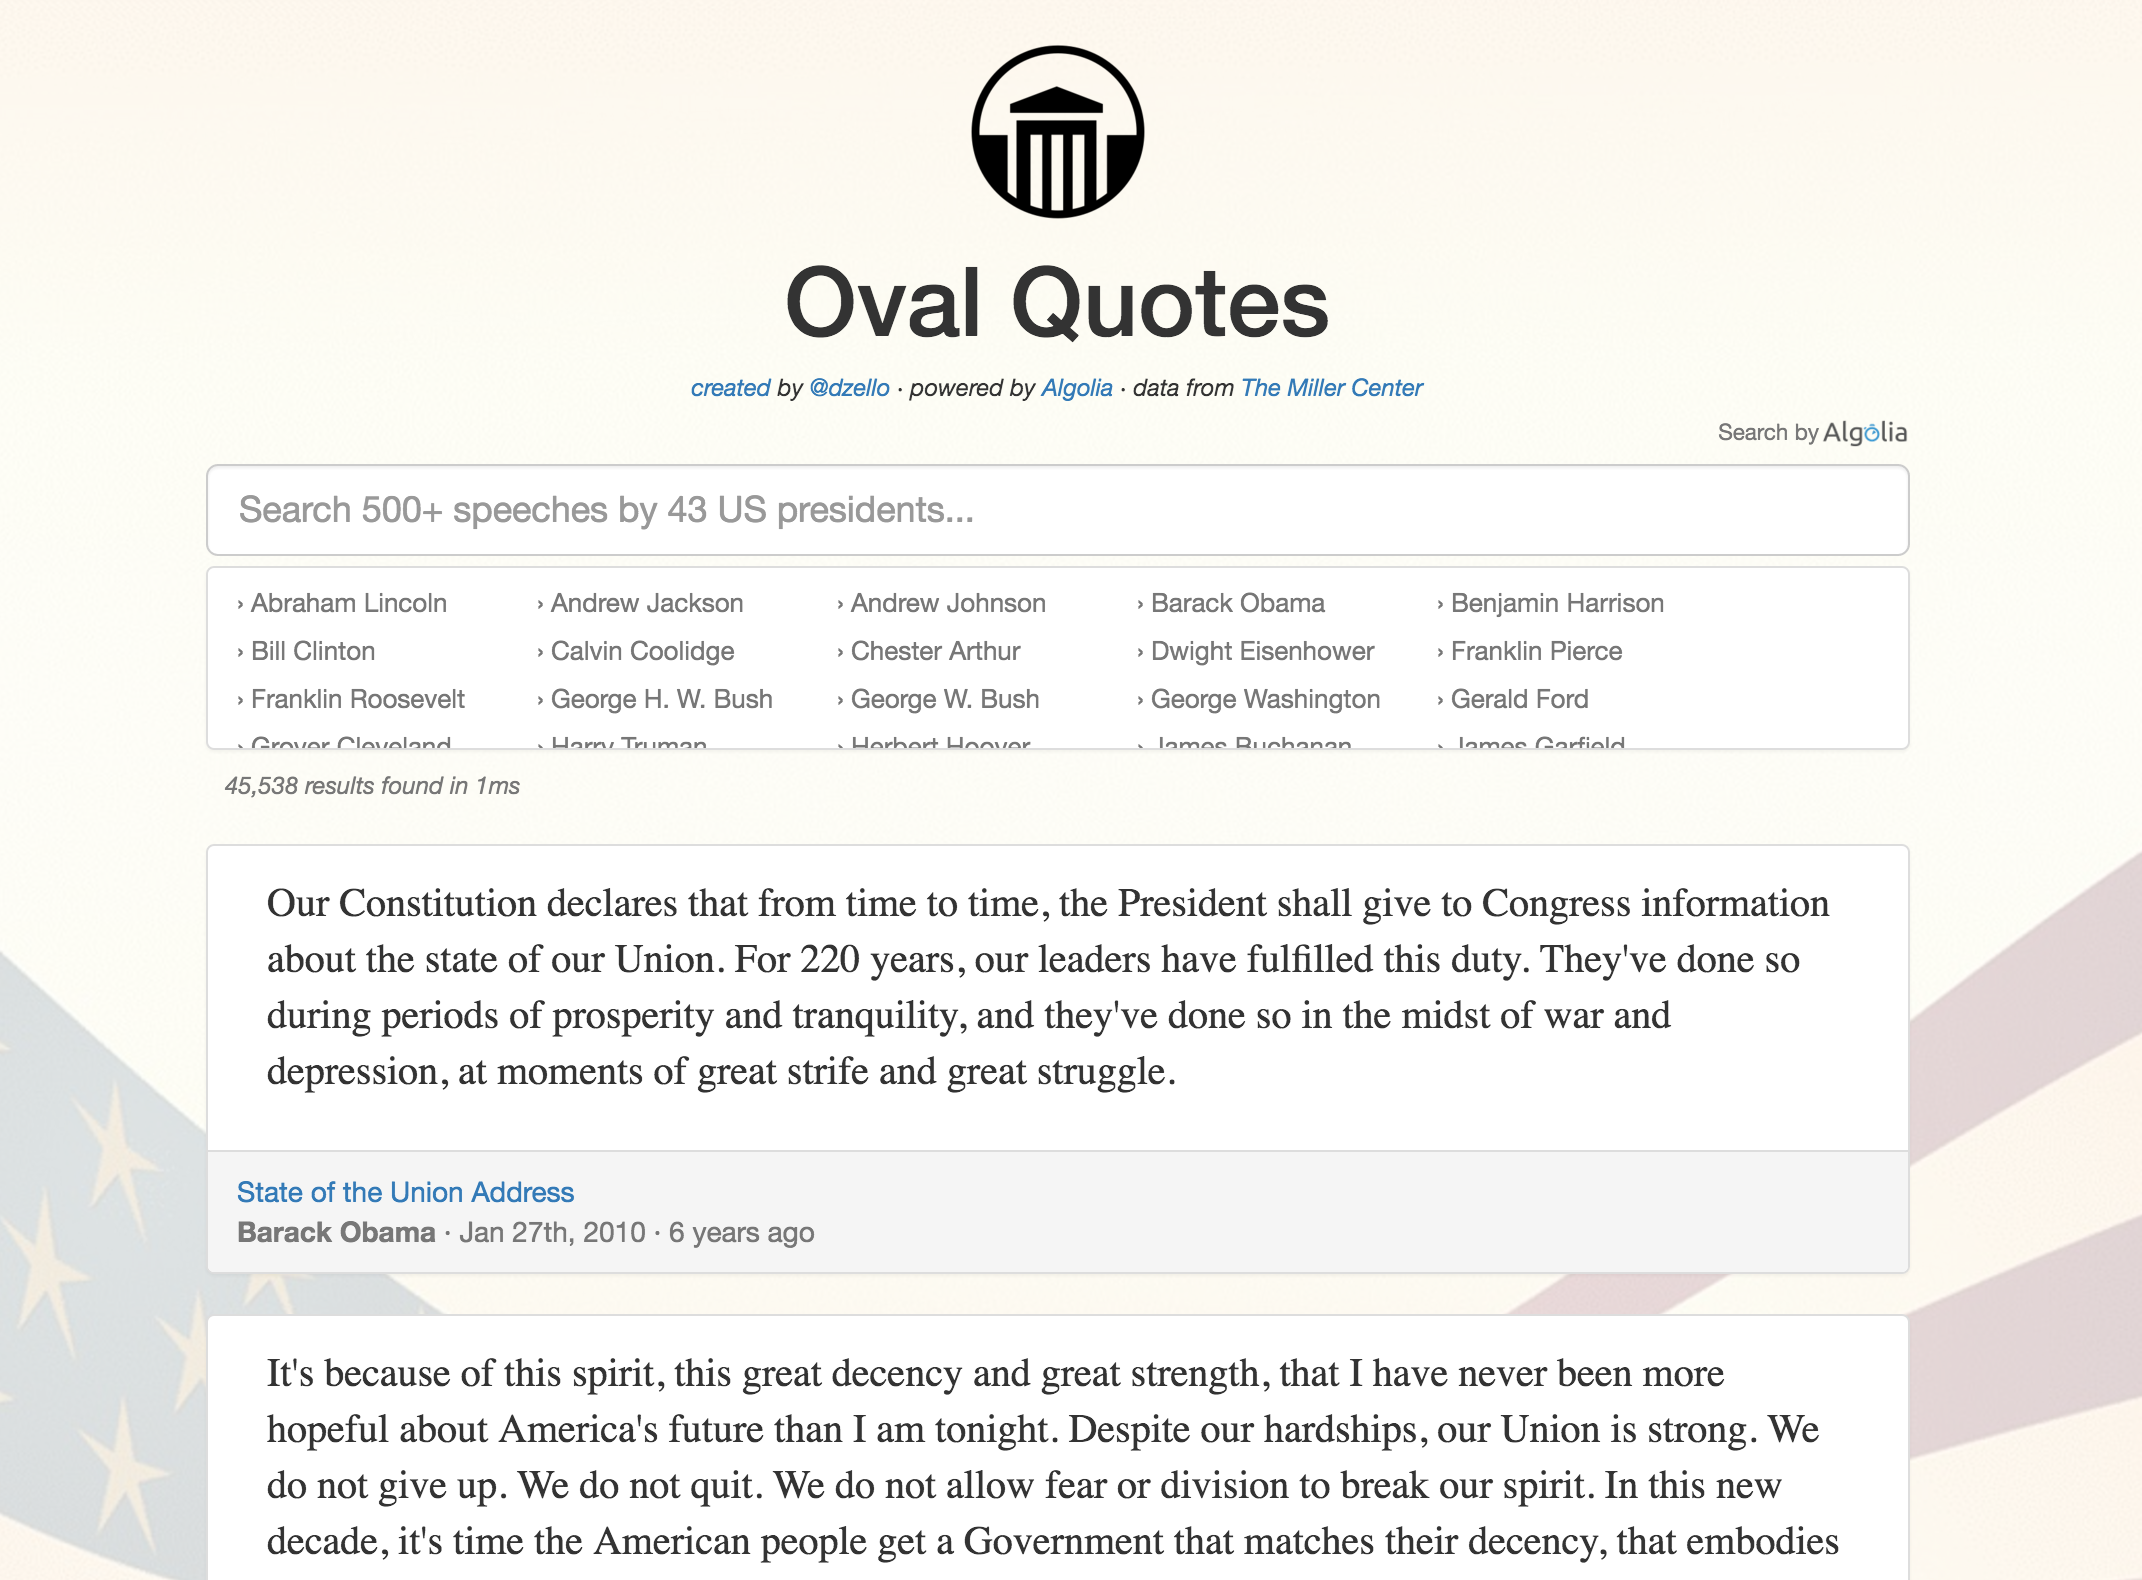 Oval Quotes Screenshot